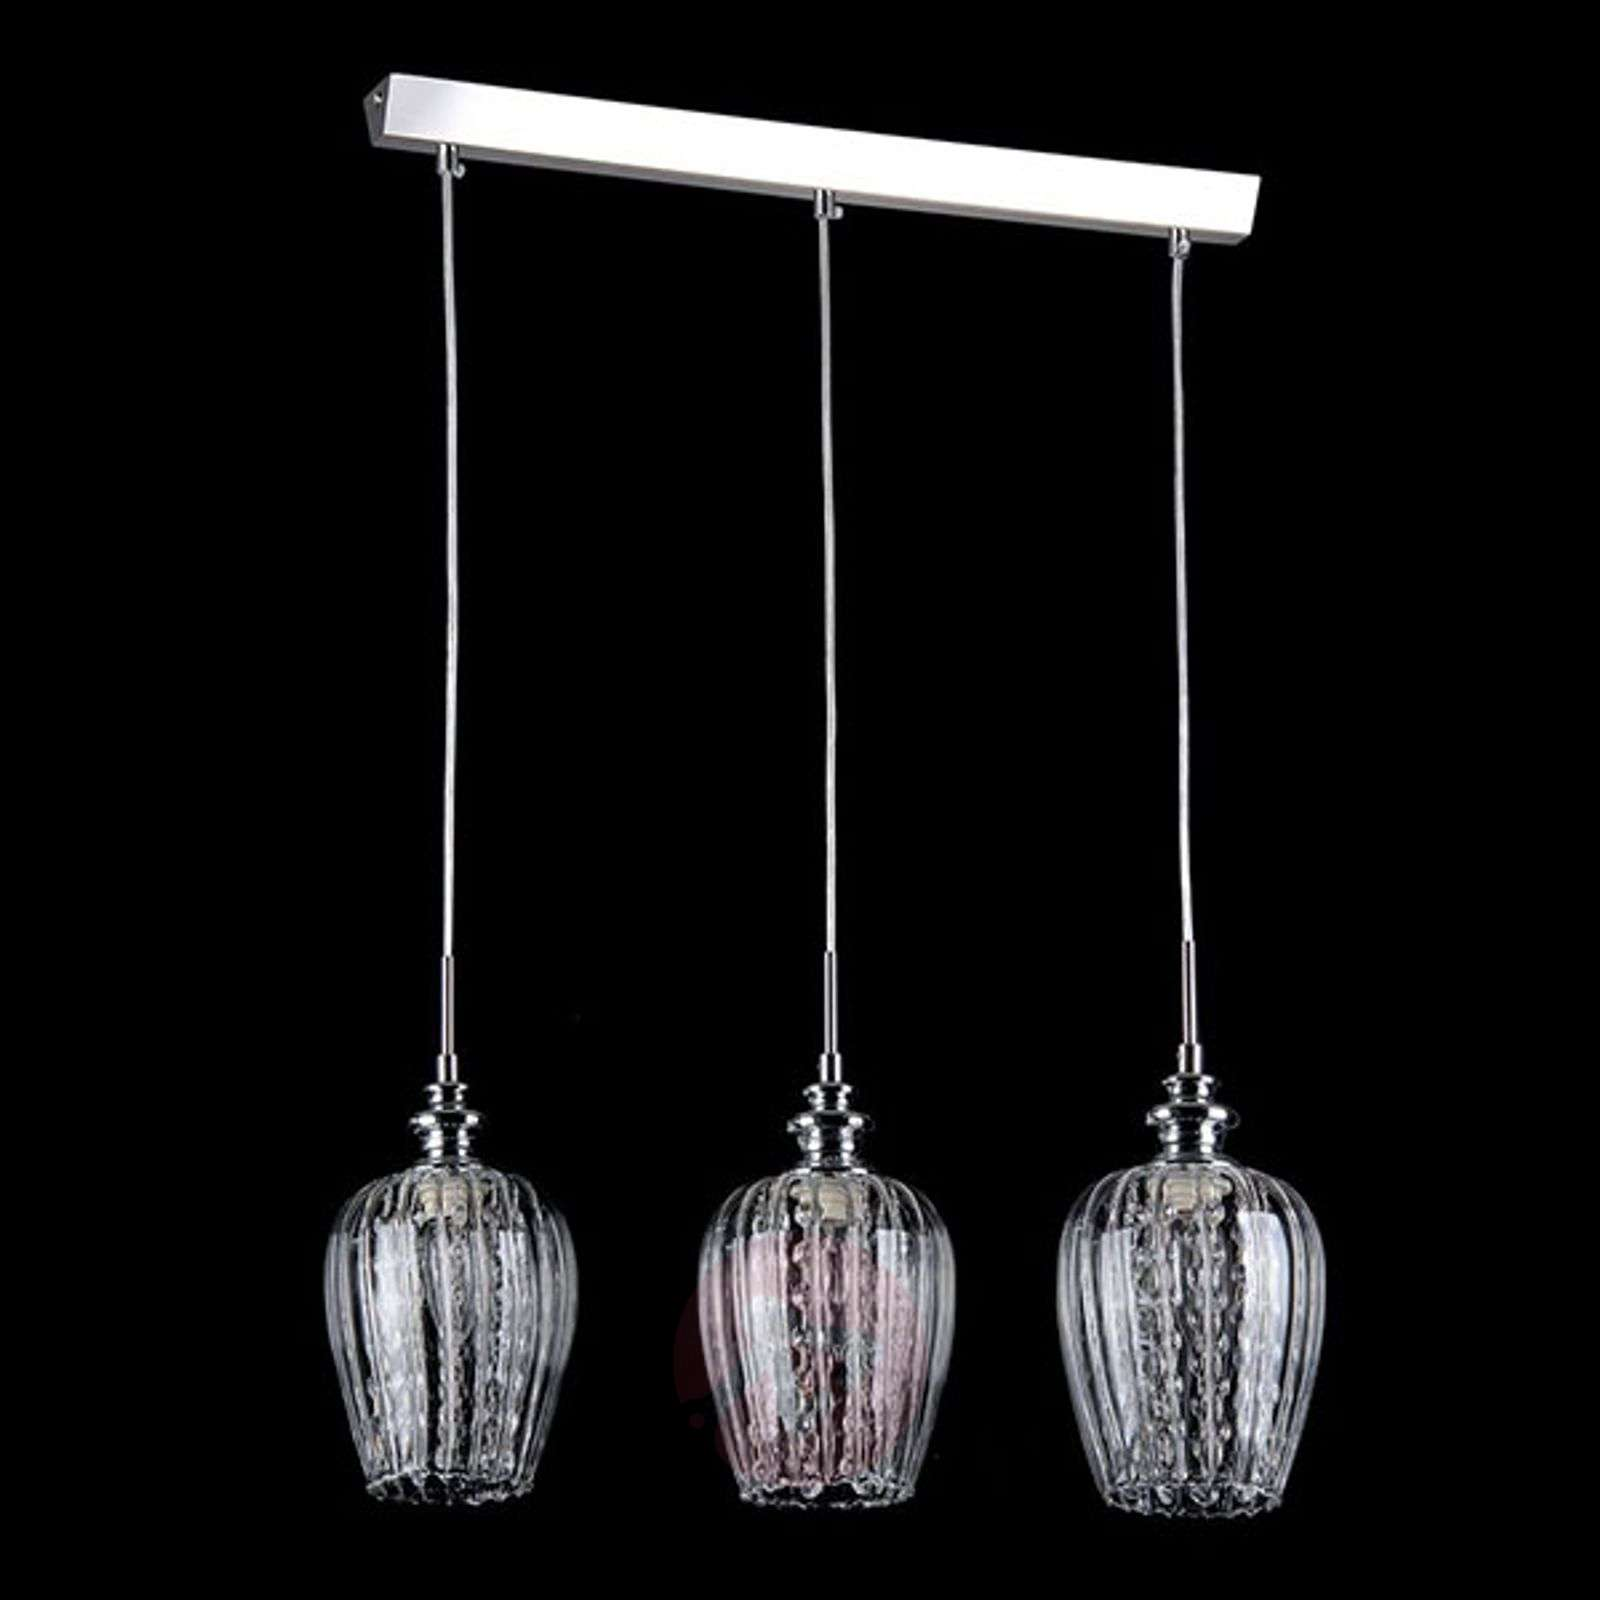 Blues hanging light with three glass shades-6727104-01